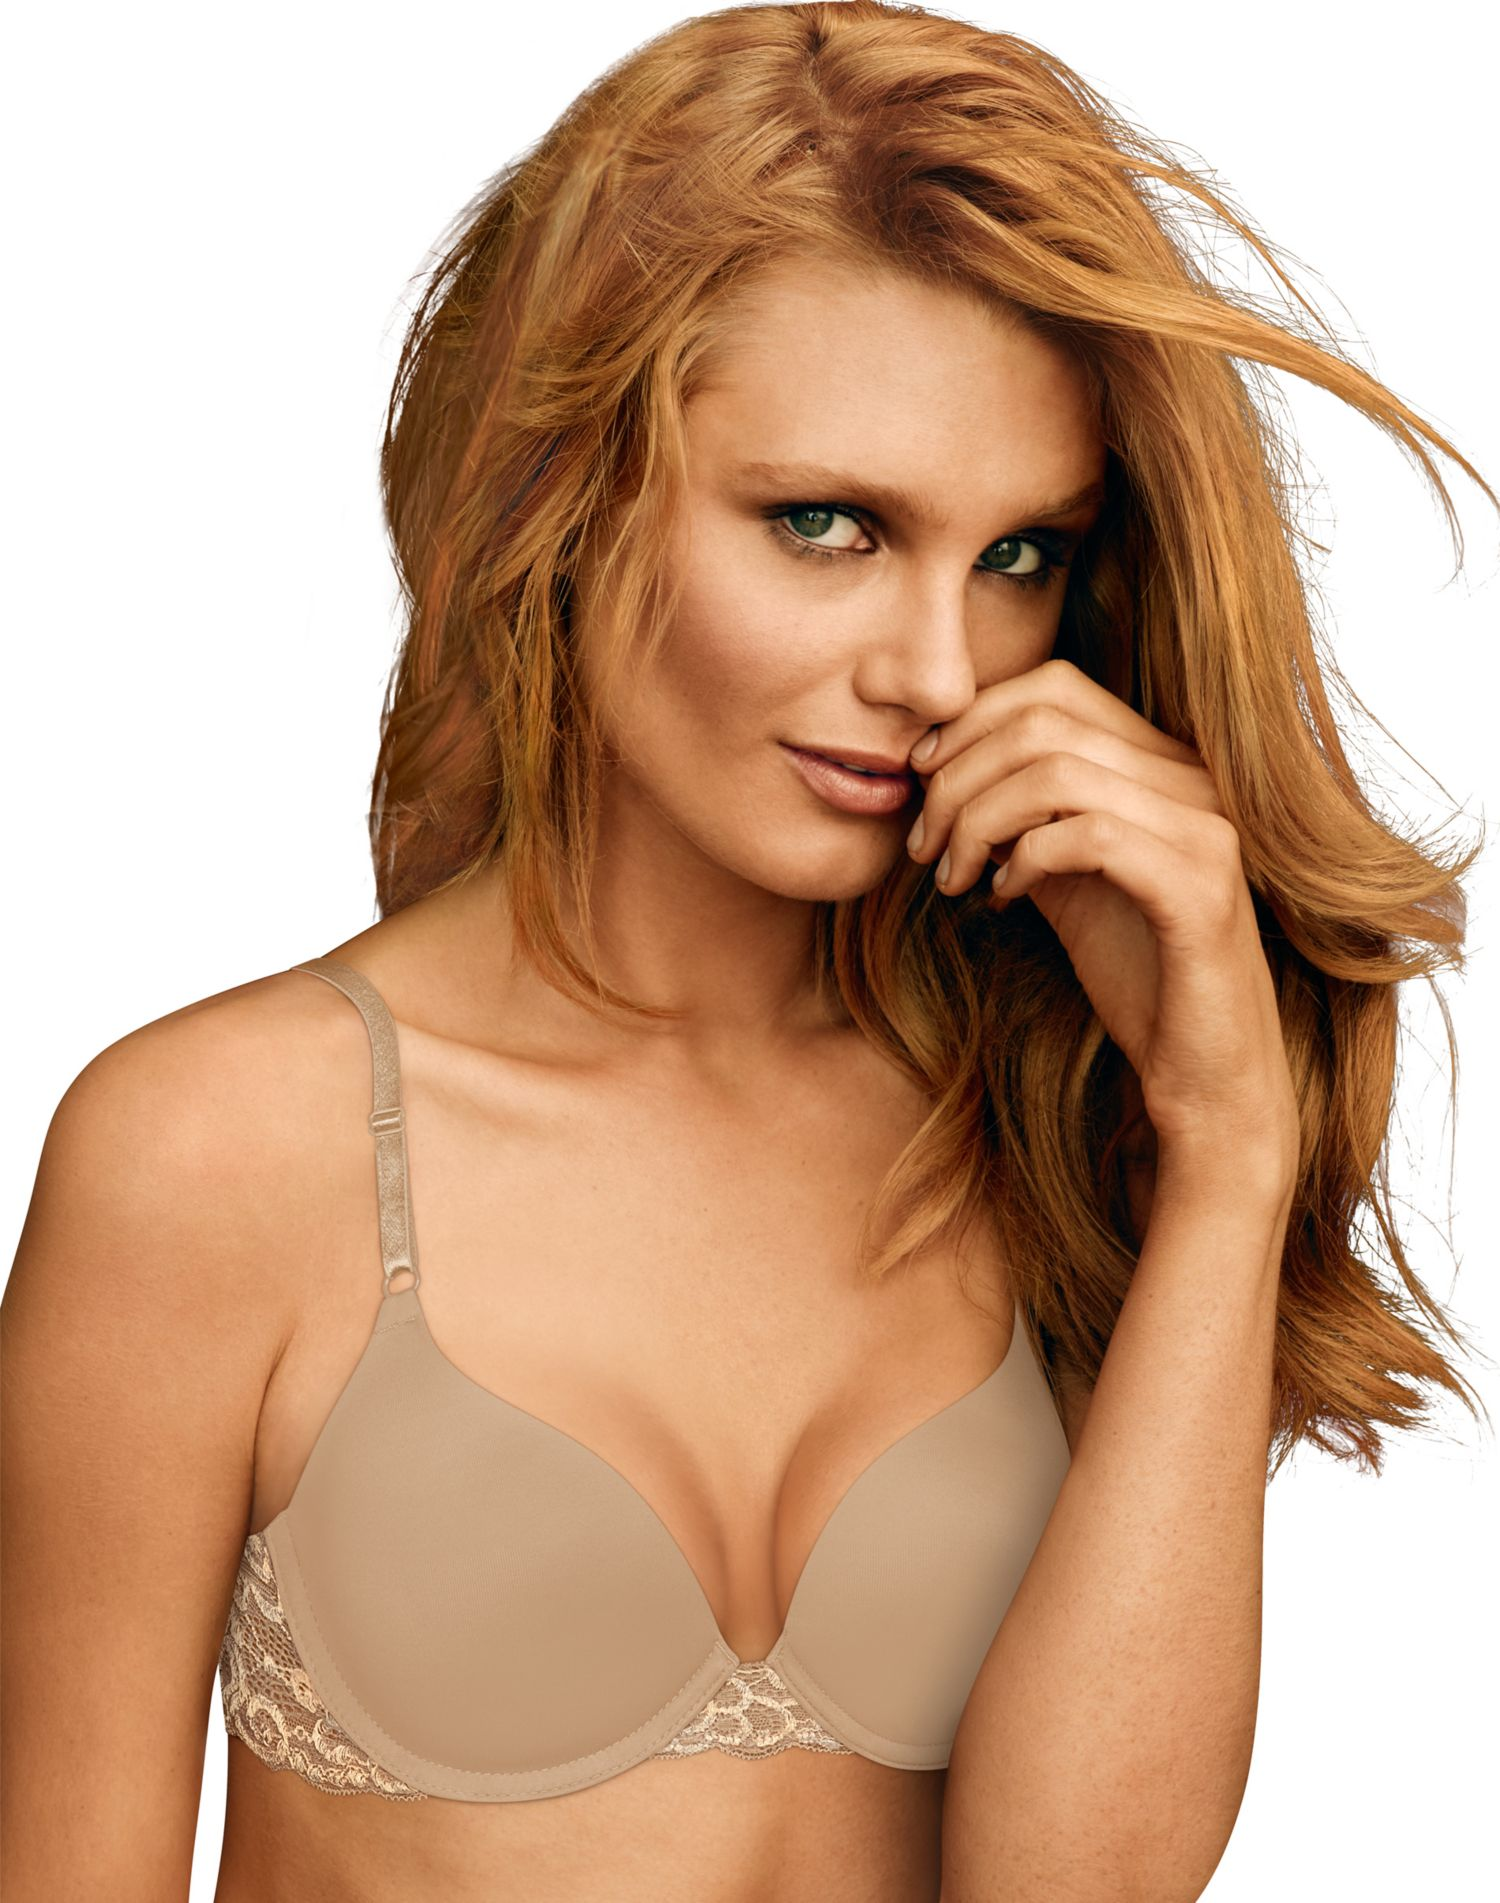 Maidenform Womens One Fab Fit Push Up Bra 2-Pack, 38D, White/Body Beige